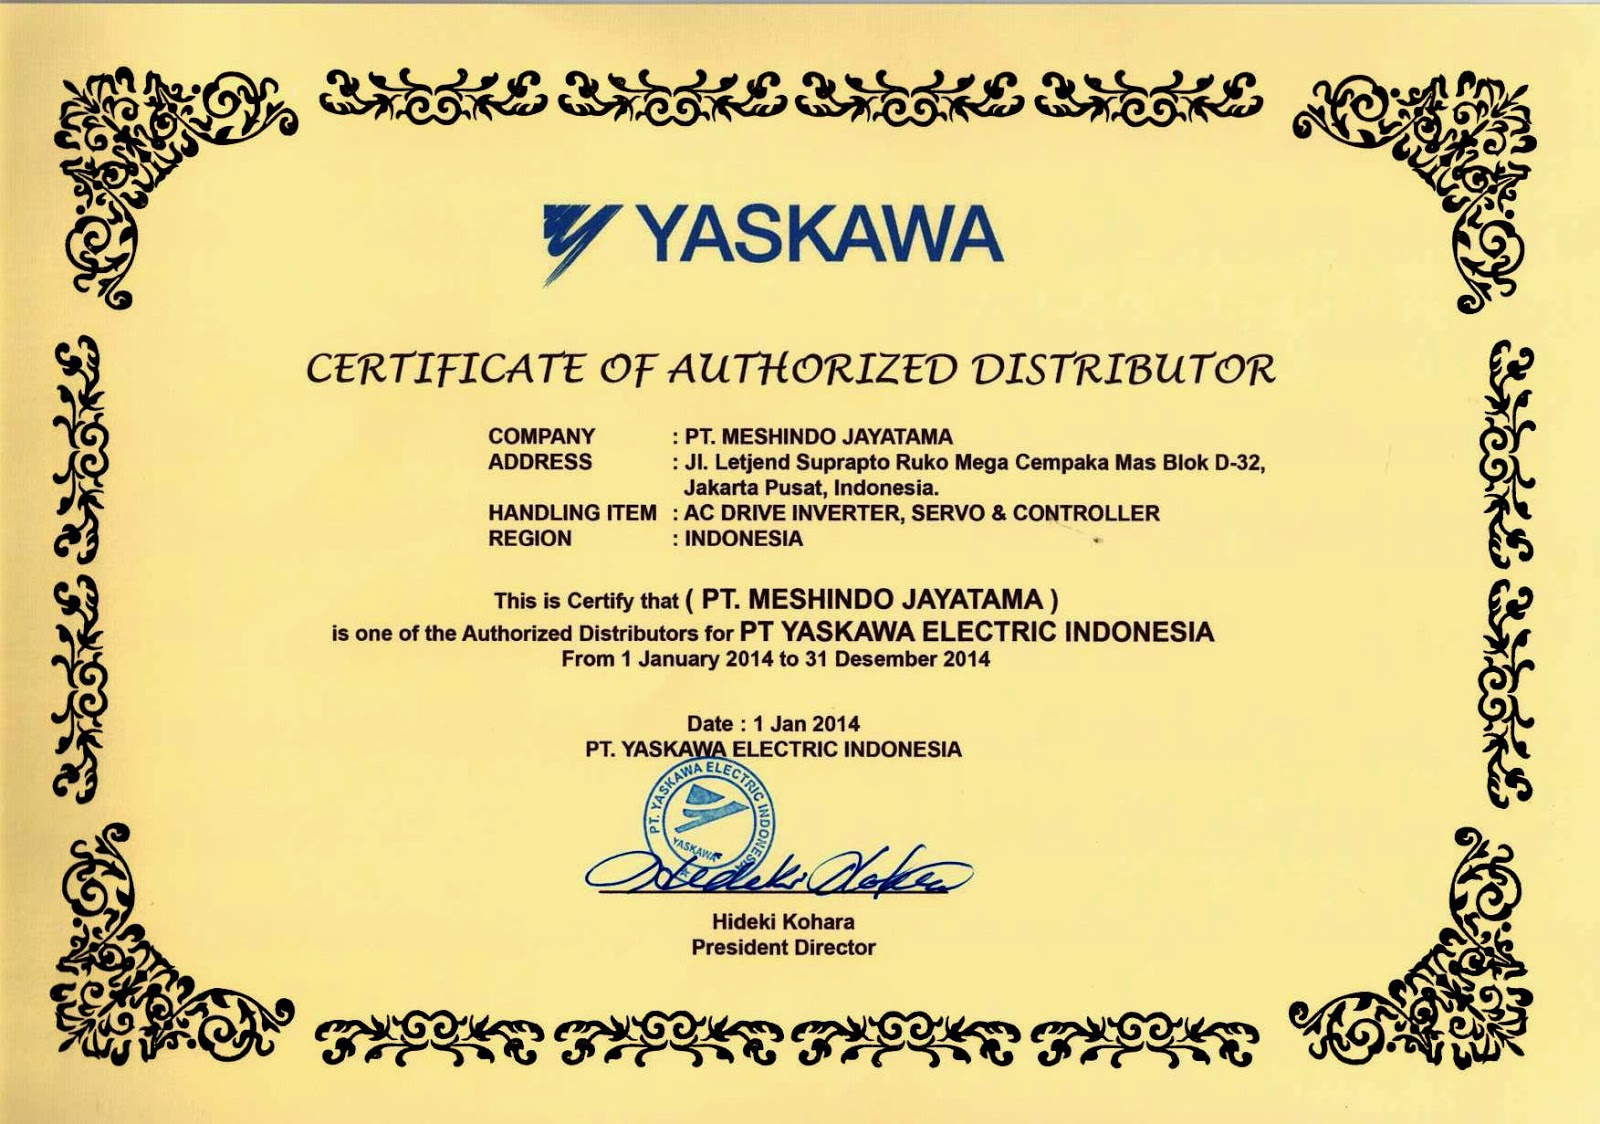 CERTIFICATE AUTHORIZED DISTRIBUTOR OF YASKAWA 2013-2014